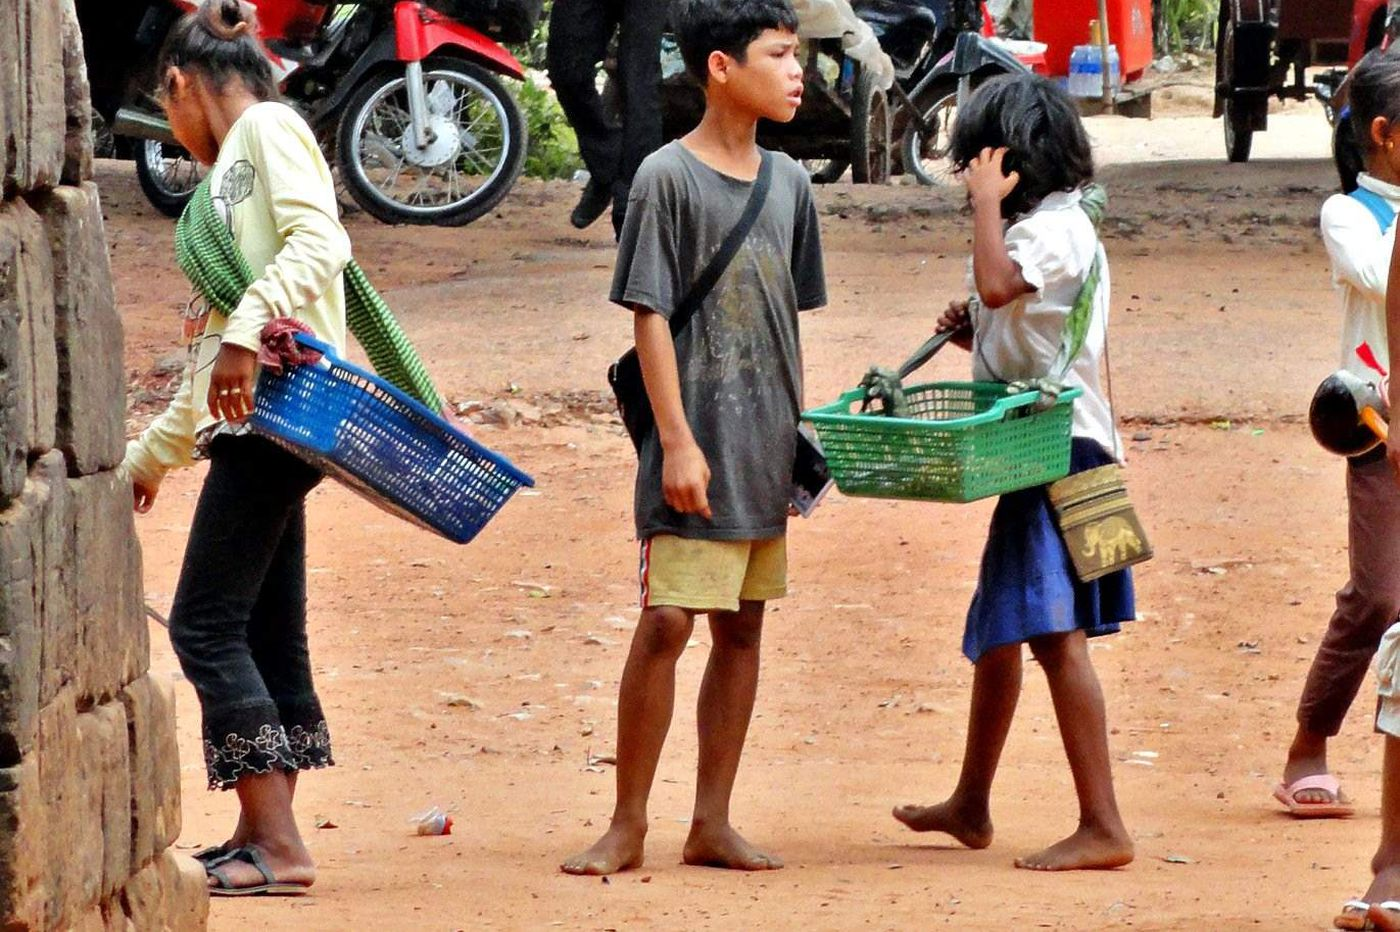 The child vendors of Angkor Wat